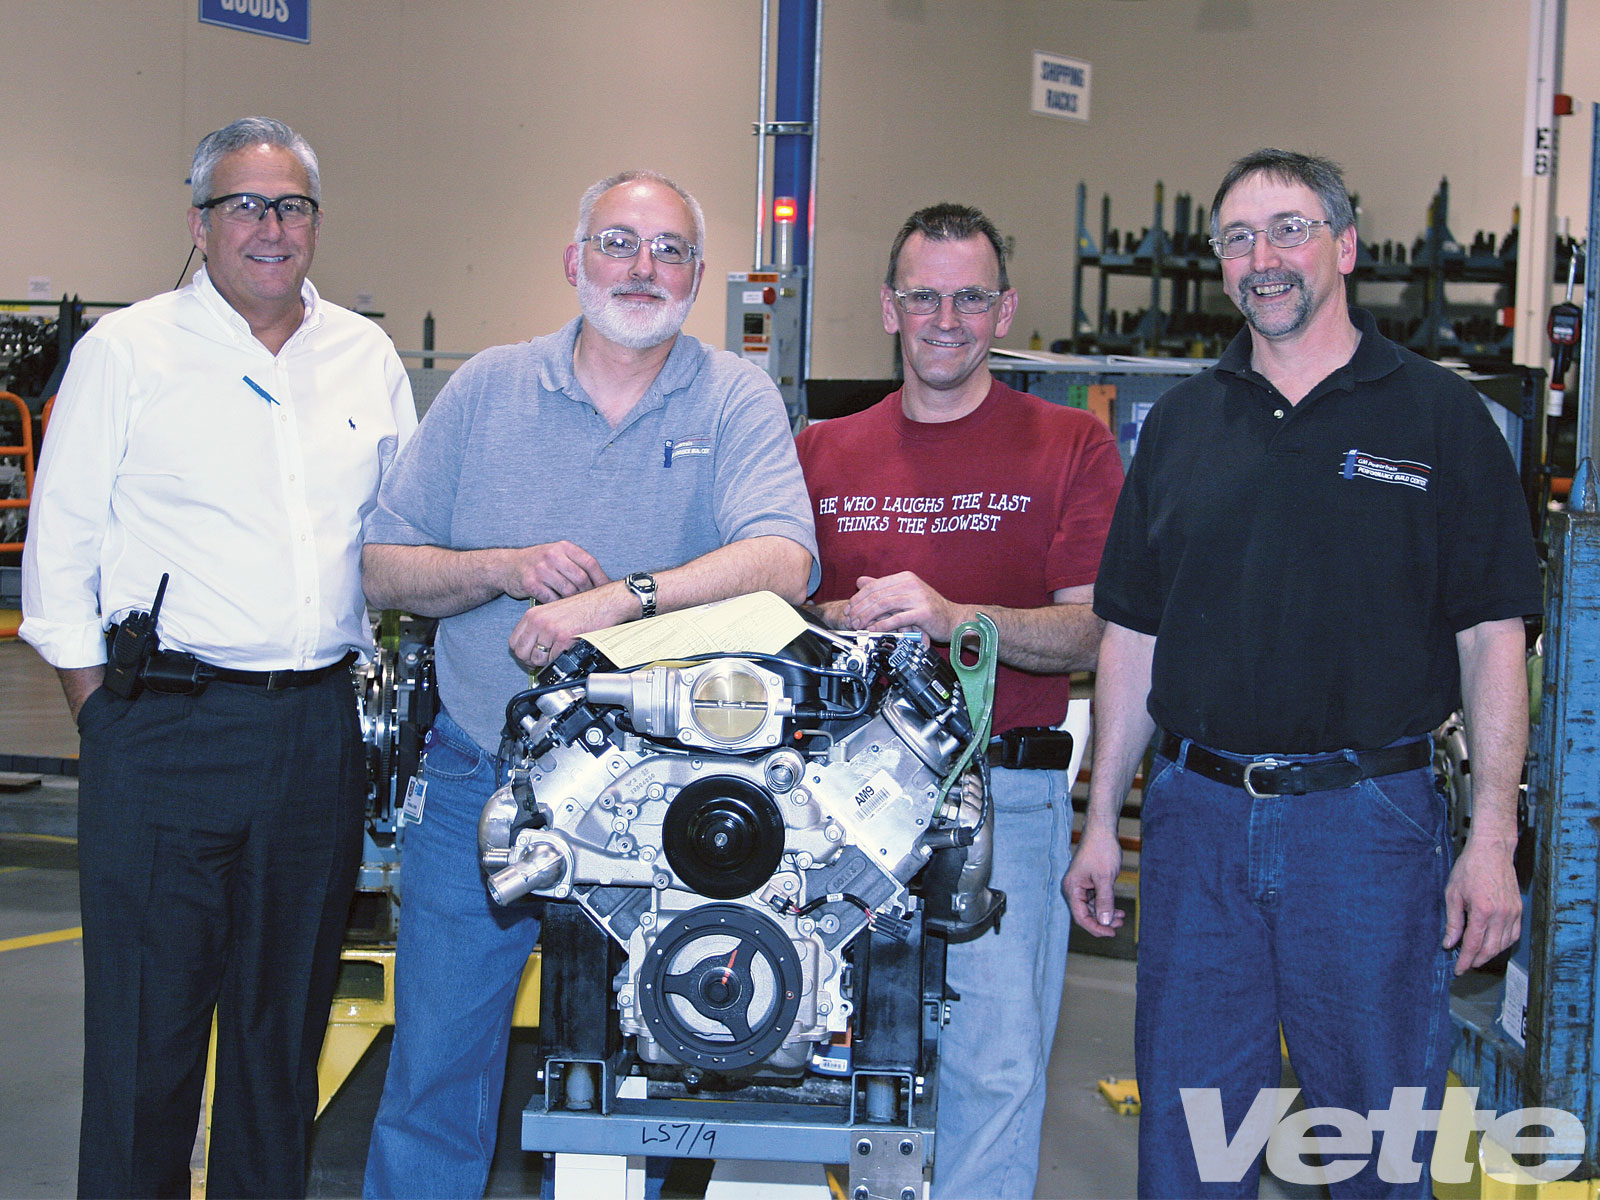 Vemp 1010 01 O Corvette Ls3 Engine Build Front View